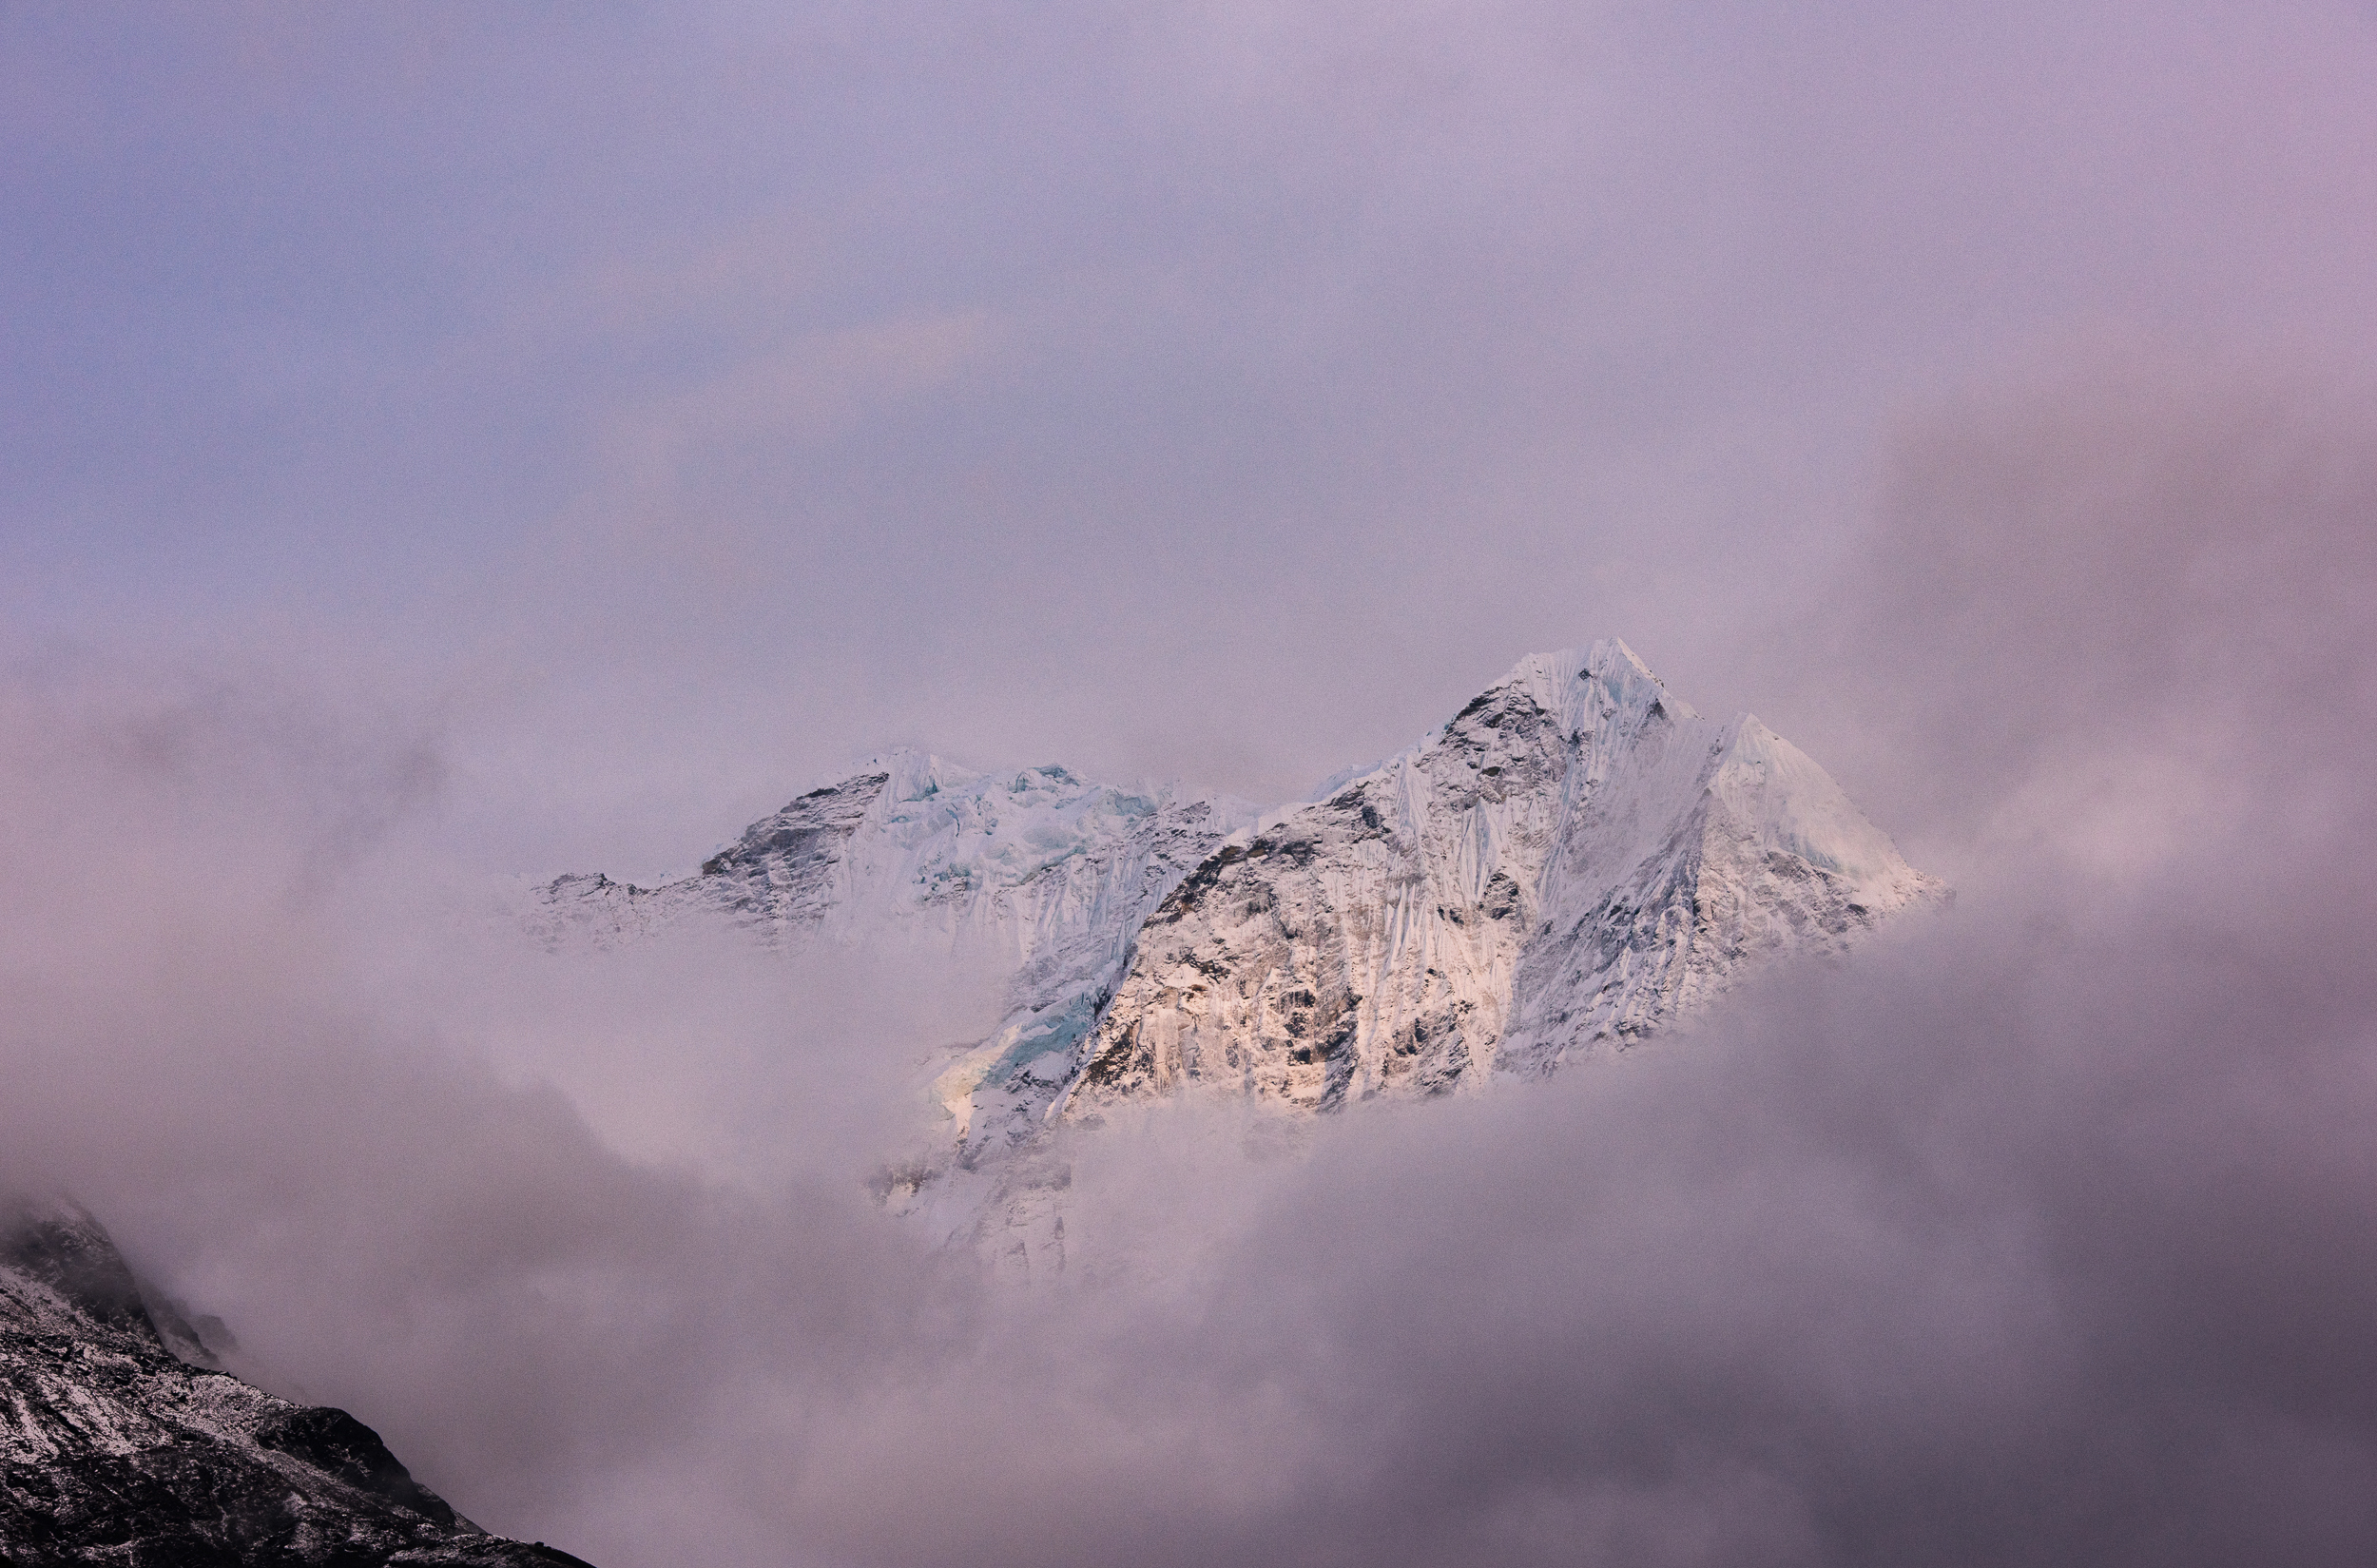 Nepal_EverestBaseCamp_2019_TaraShupe_Photography_DSC_3733.jpg